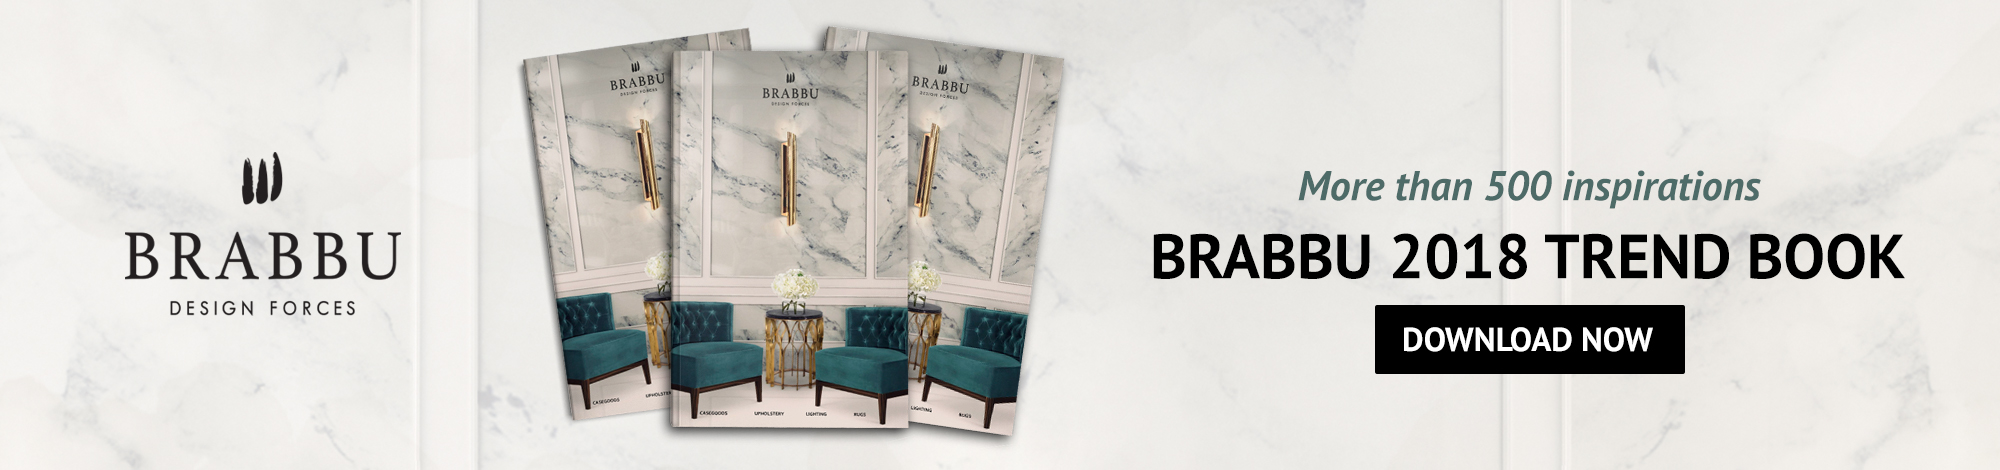 BRABBU Catalogue Interior Design Trends What Is IN And OUT Of The Interior Design Trends For 2019?  1C5EB82328DCFD5BD10428DB124BD945082C079483CACCDD2D pimgpsh fullsize distr